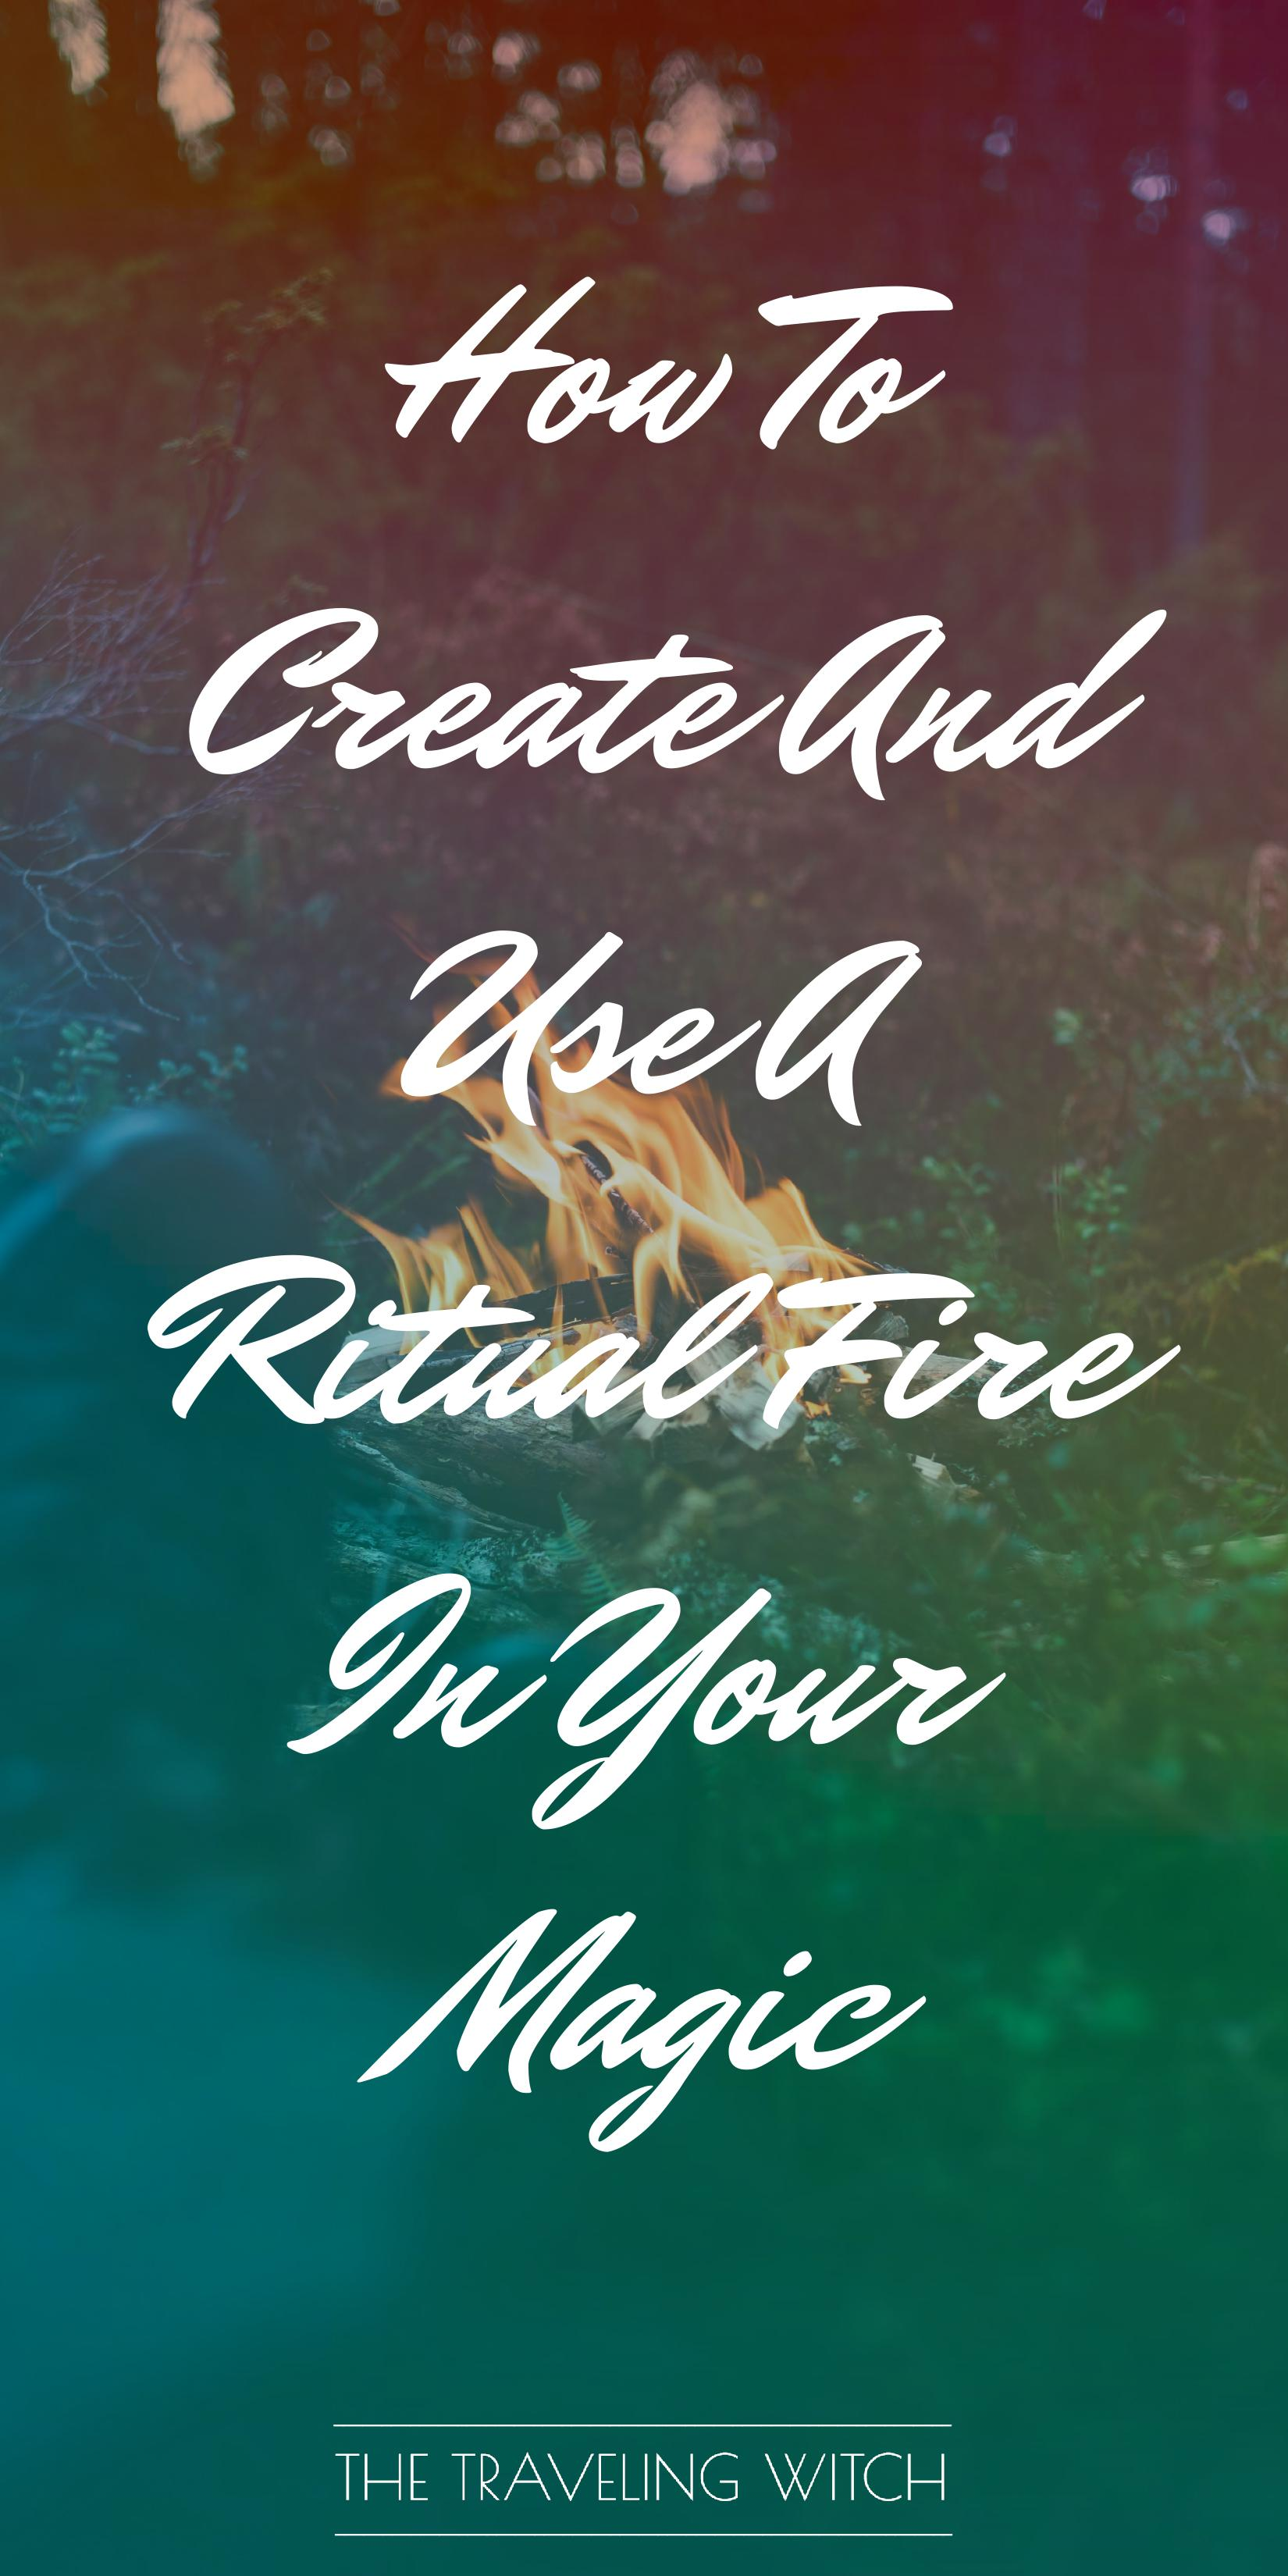 How To Create And Use A Ritual Fire In Your Magic by The Traveling Witch #Witchcraft